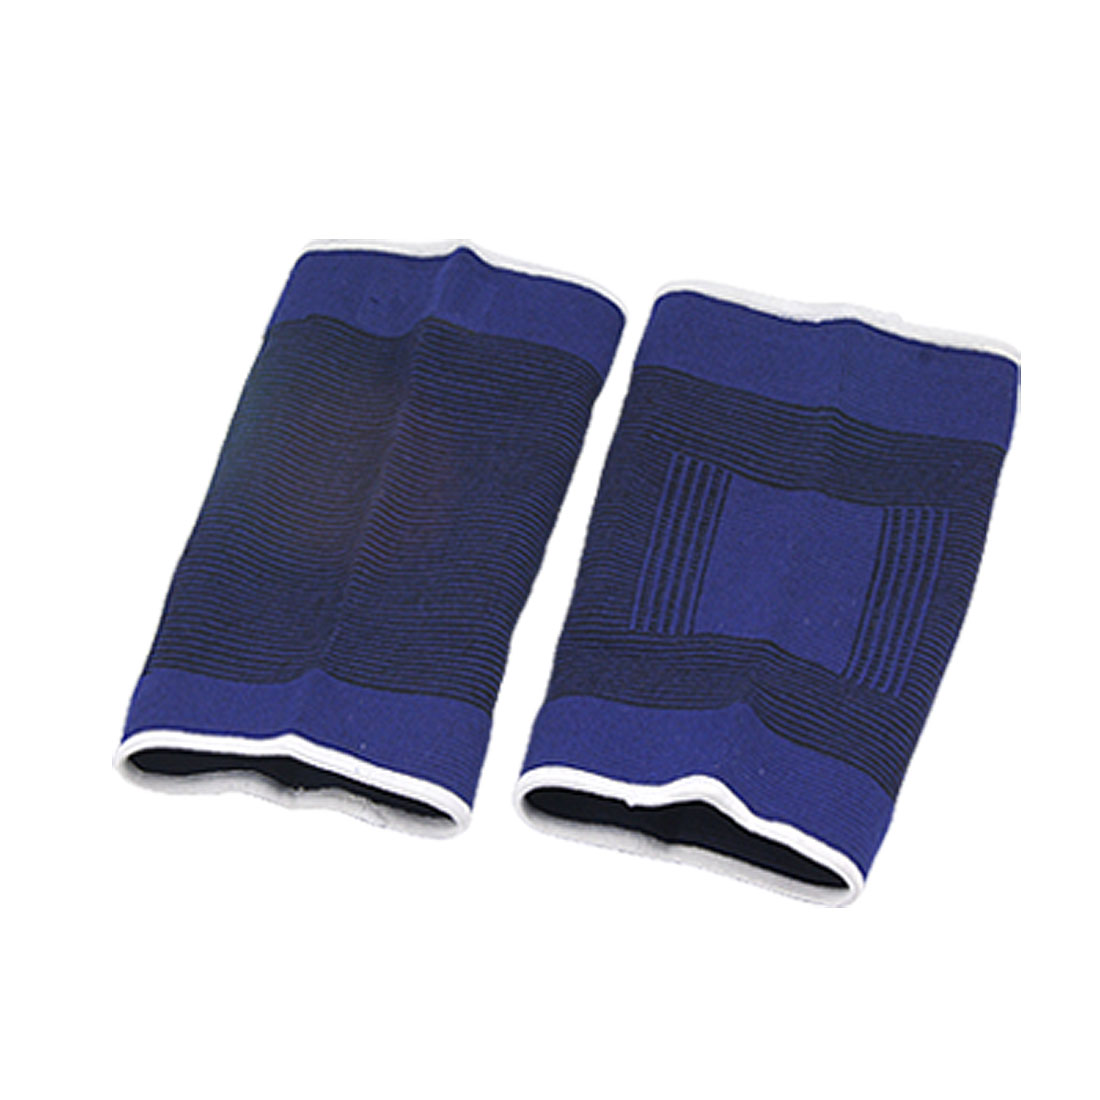 Pair of Thigh Support Stretch Brace Sport Bandage